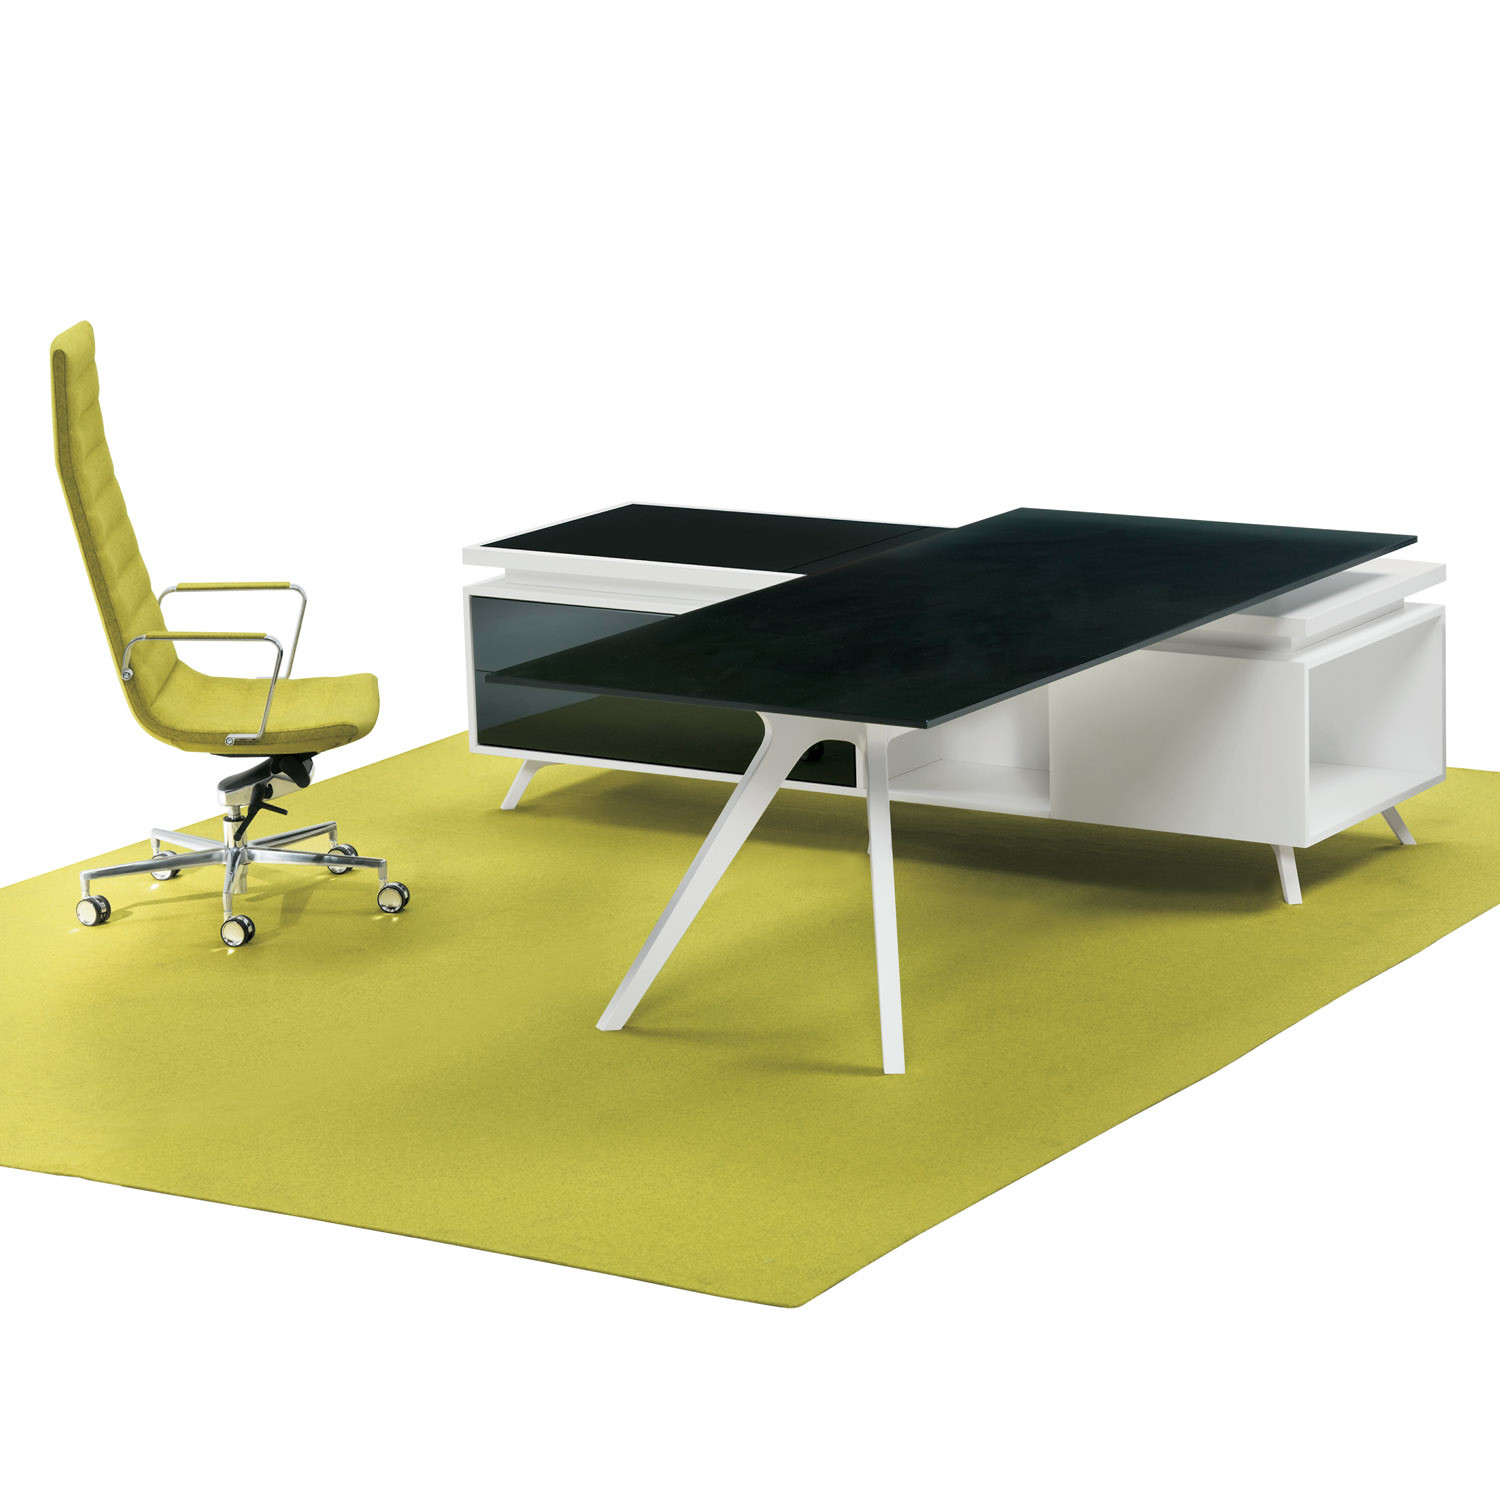 DR Executive Desk can be complemented with supporting service storage